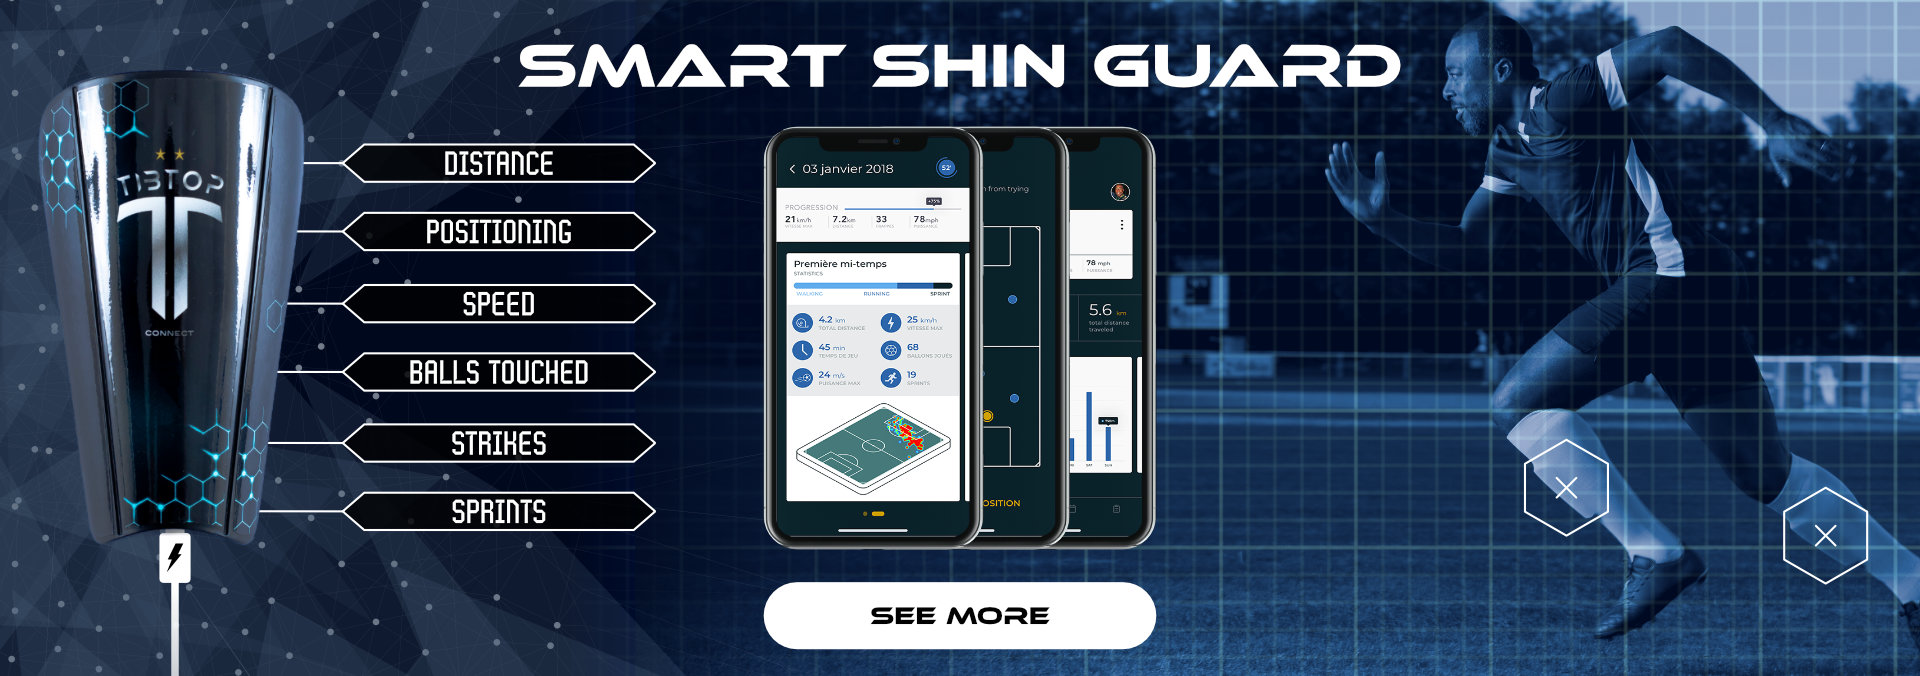 Switch to SMART SHIN PADS to measure your performance